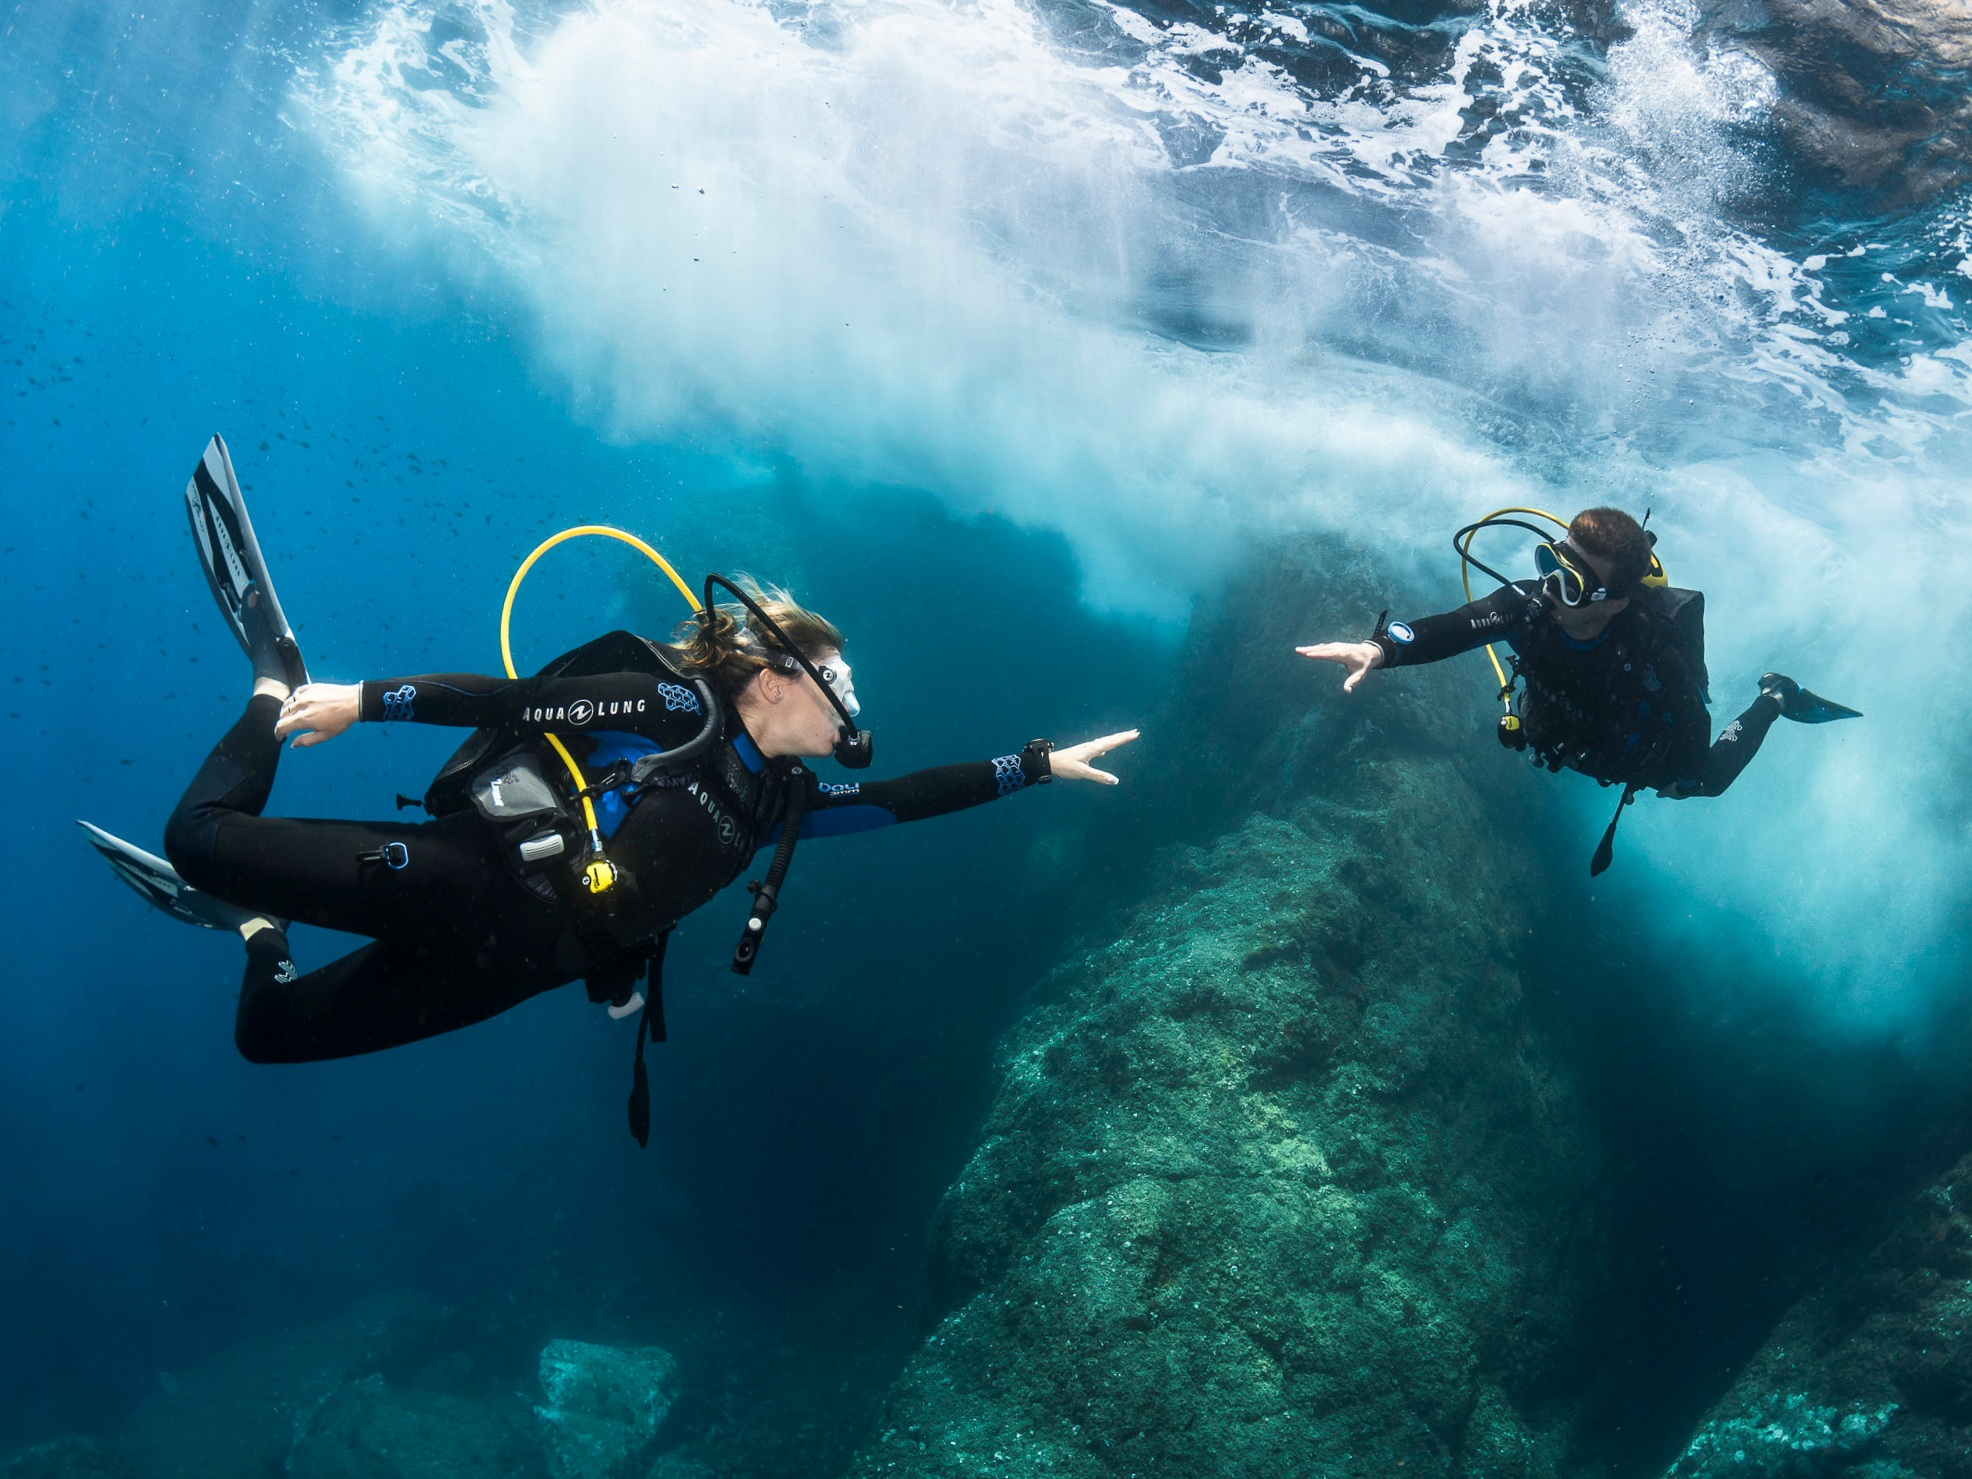 Step 3 - Open Water Skill Practice - To Instruct you as you put your dive skills into practice, refine your rescue skills and develop your ability to supervise scuba diving ACTIVITIES and assist with diver training